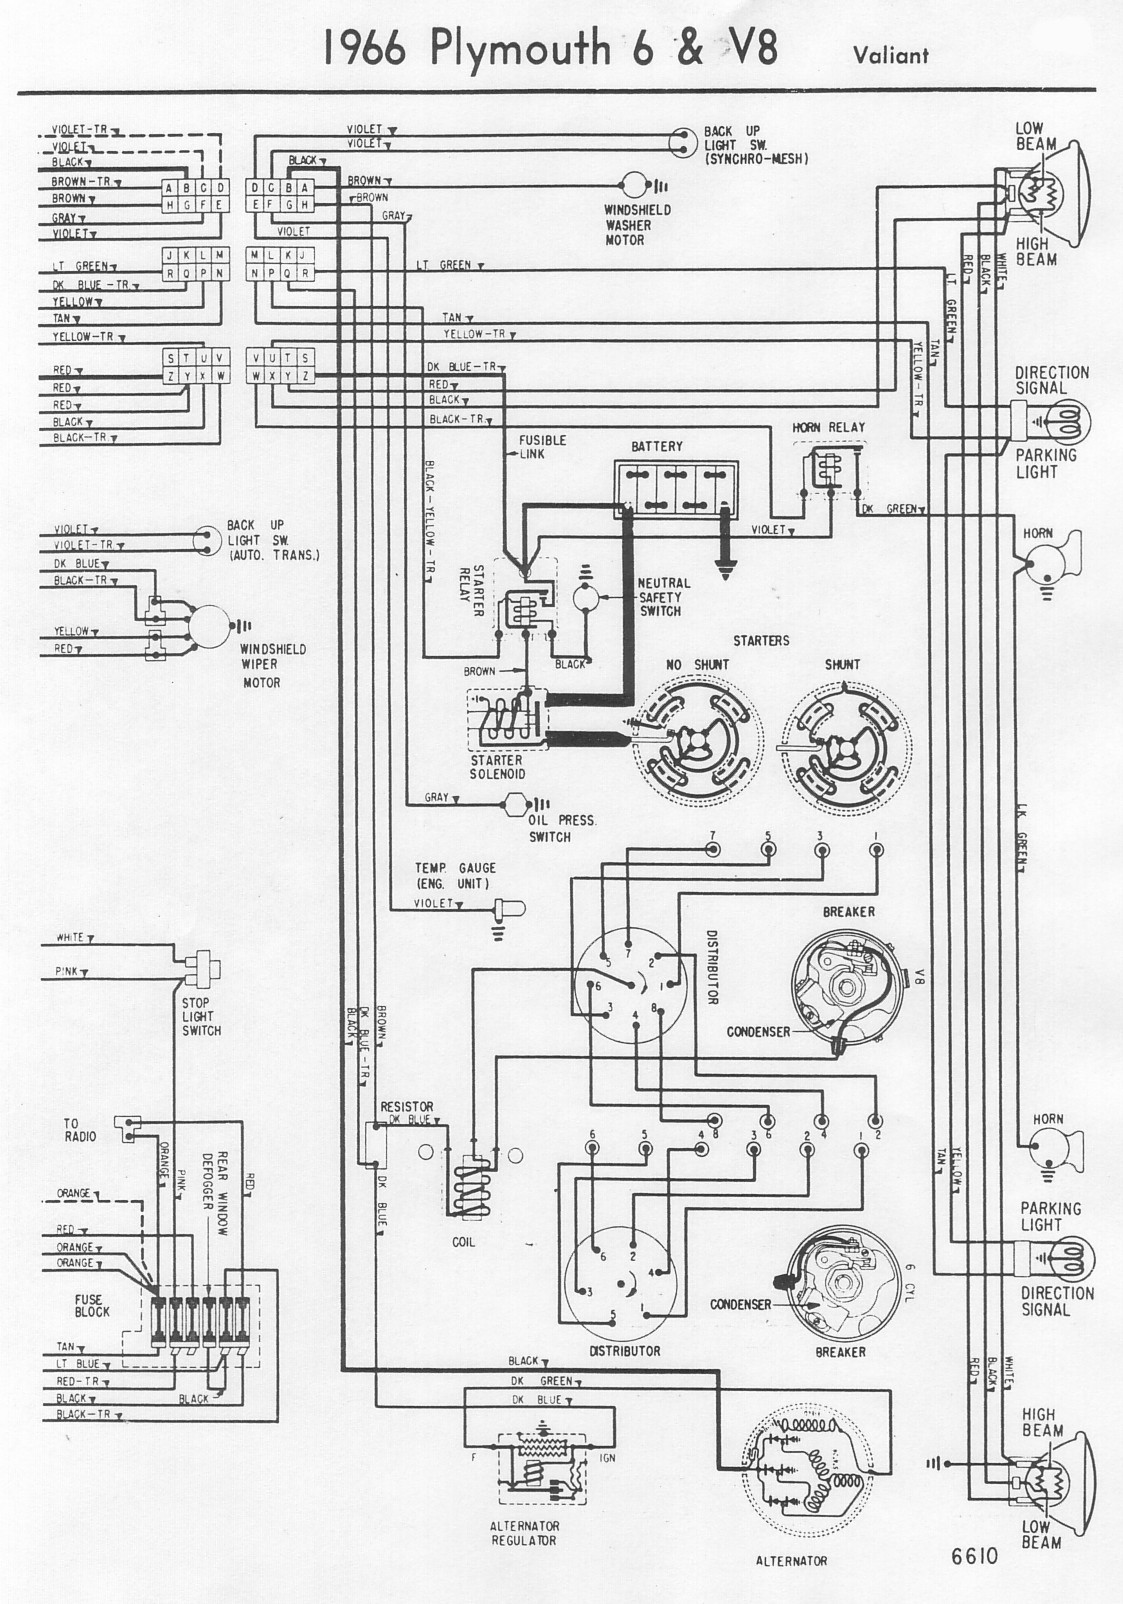 66ValiantB?quality\\=80\\&strip\\=all 1976 suzuki dr 250 wiring diagram suzuki gsx 750 wiring diagram ttr 250 wiring diagram at gsmx.co